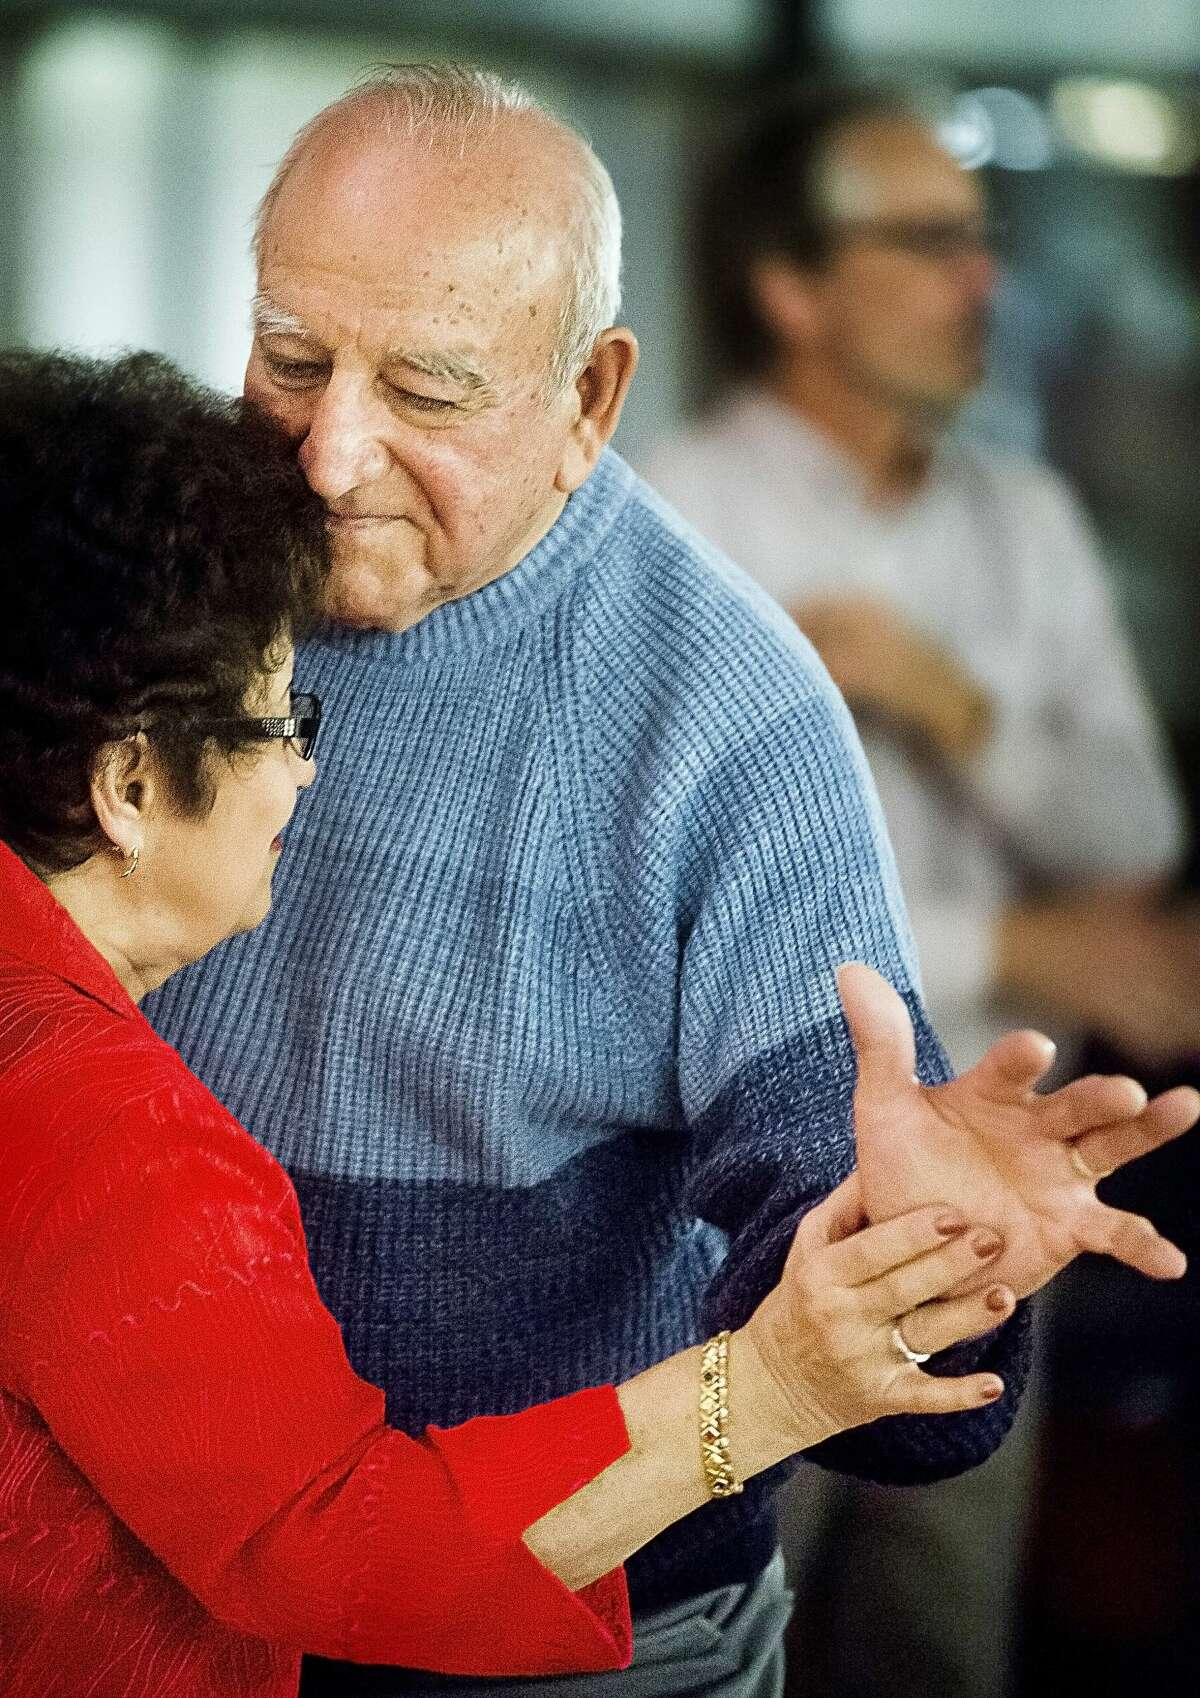 Manuel Sanchez of Saginaw, center, dances with Fran Gay of Flint as Blast from the Past, Midland's oldest continuous operating big band, plays Christmas songs during a dance held on Monday, Dec. 5, 2017 at the Greater Midland Community Center. Blast from the Past will perform more Christmas songs at the Grace A. Dow Memorial Library on Sunday, Dec. 10 at 2:30 p.m. Admission is free. (Katy Kildee/kkildee@mdn.net)